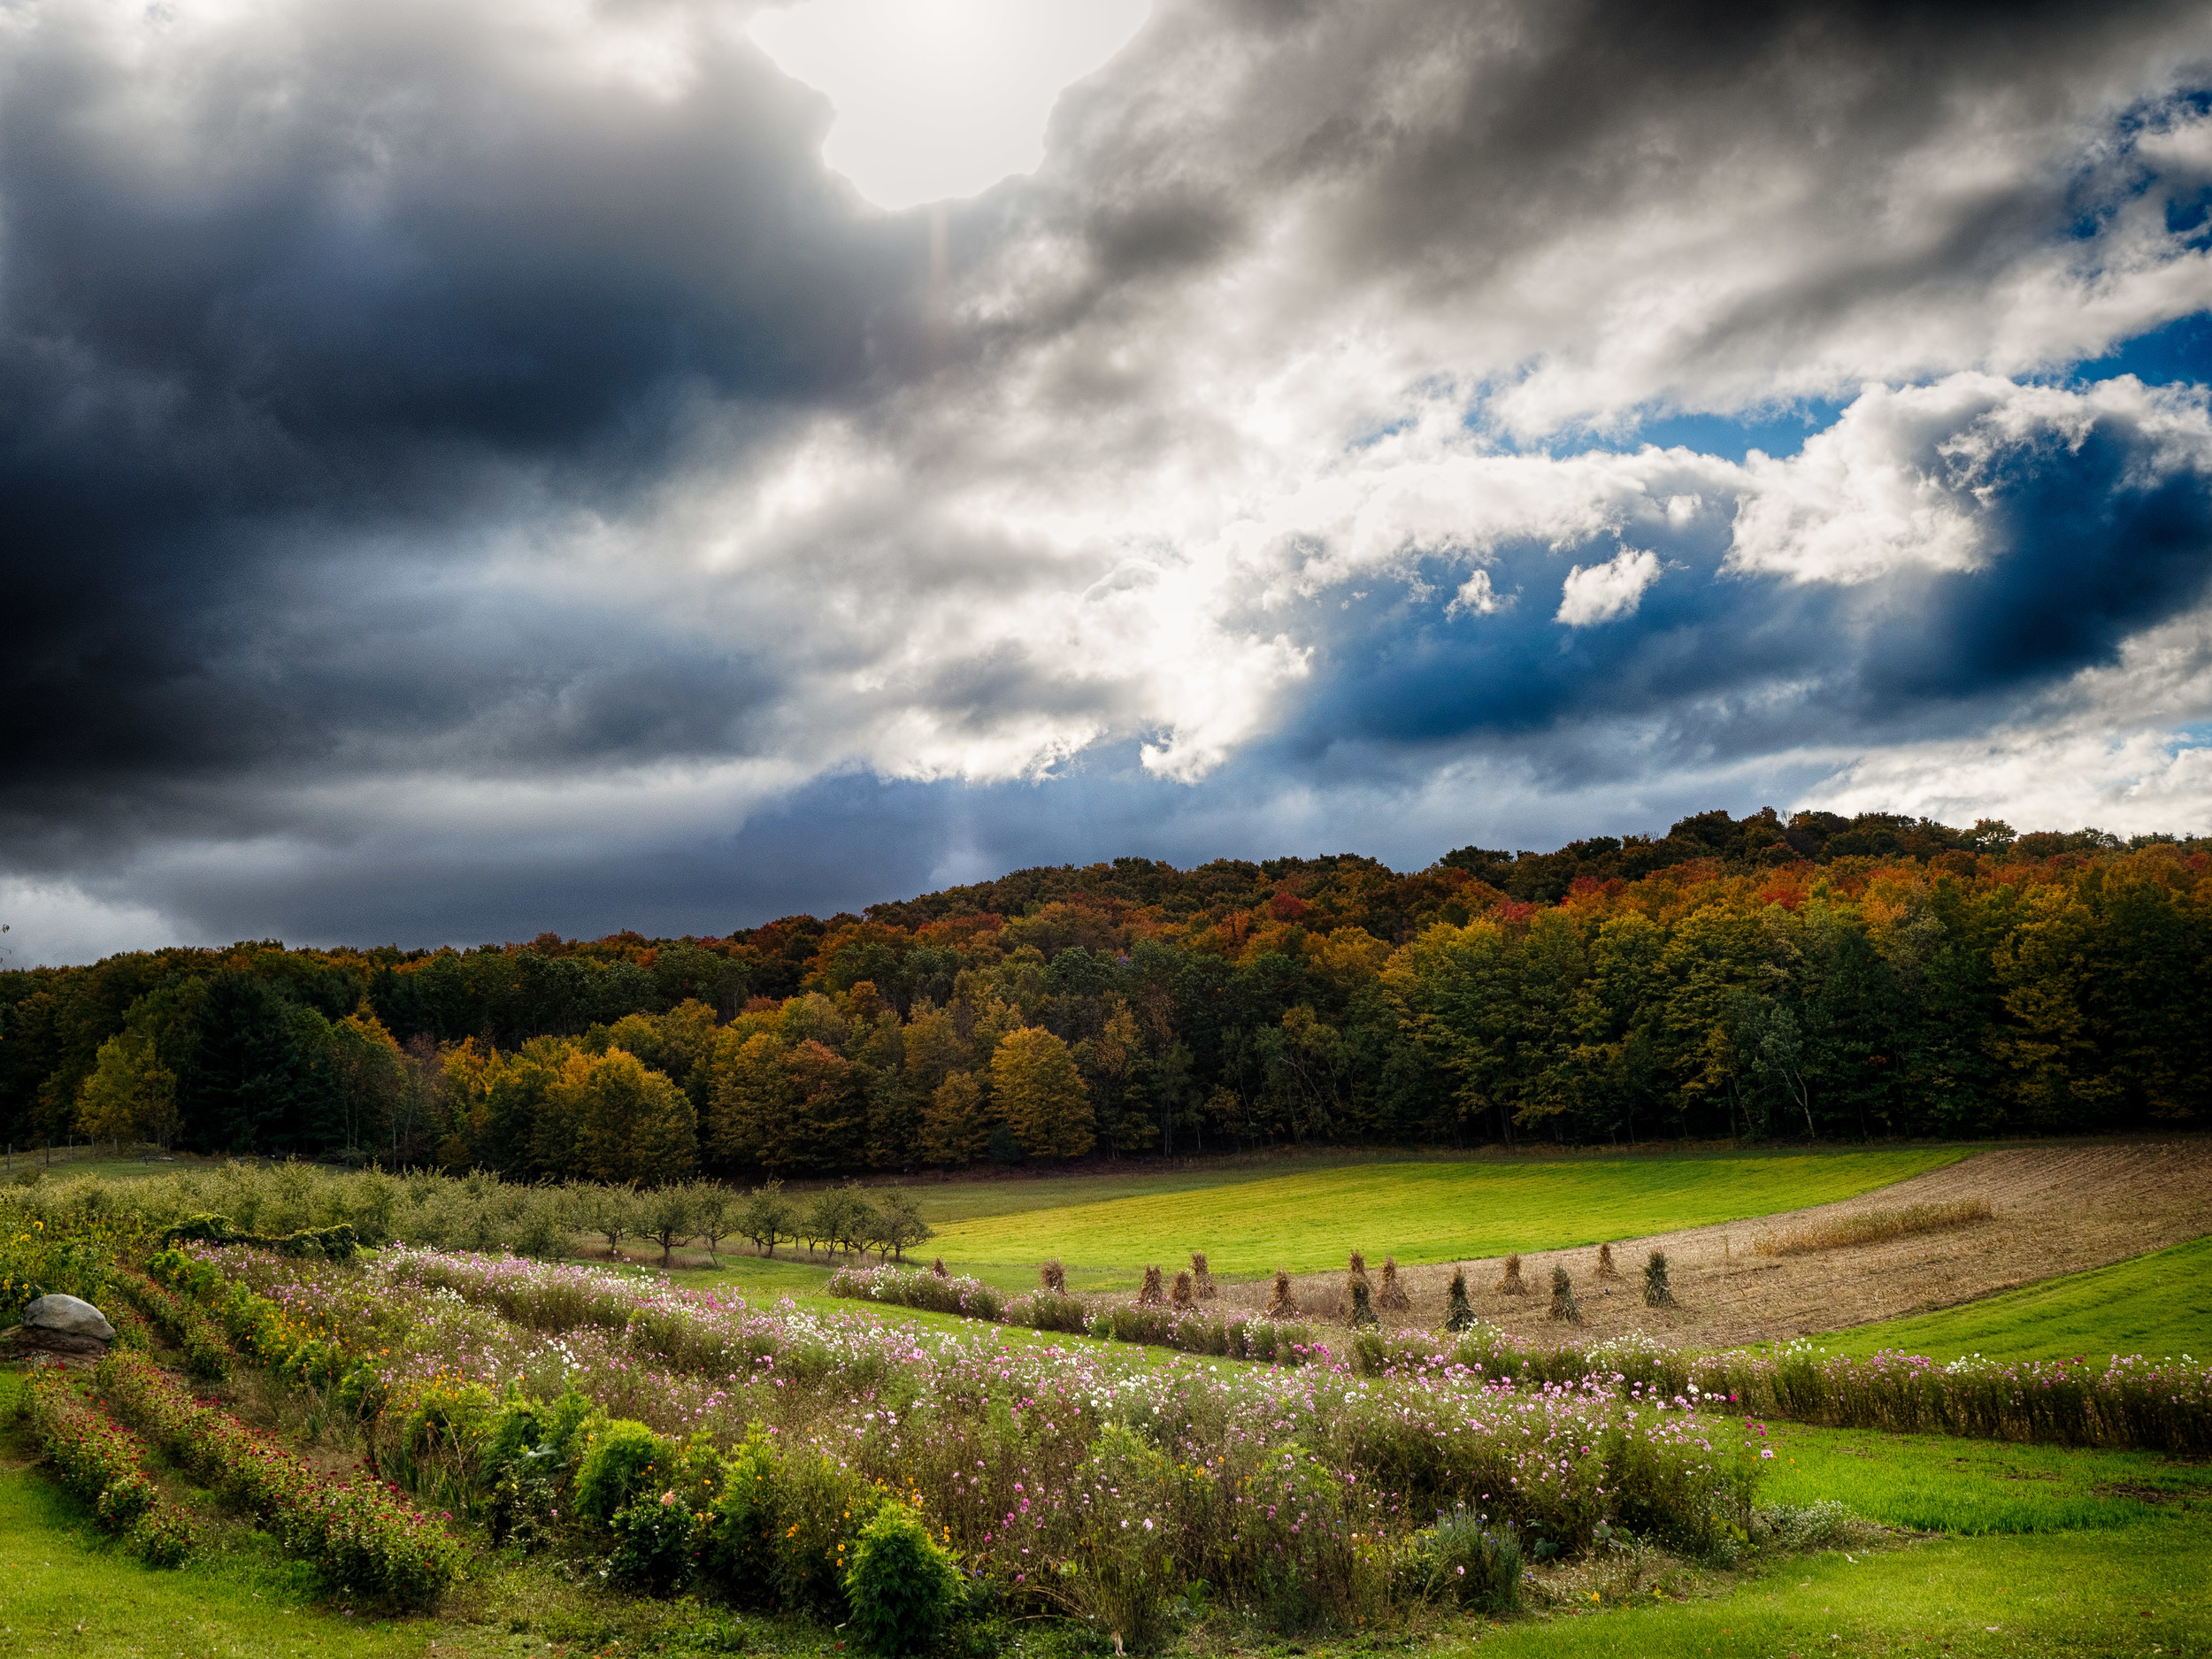 The first image of the day taken on M22 near Empire Michigan. M22 was just voted America's most scenic fall drive!